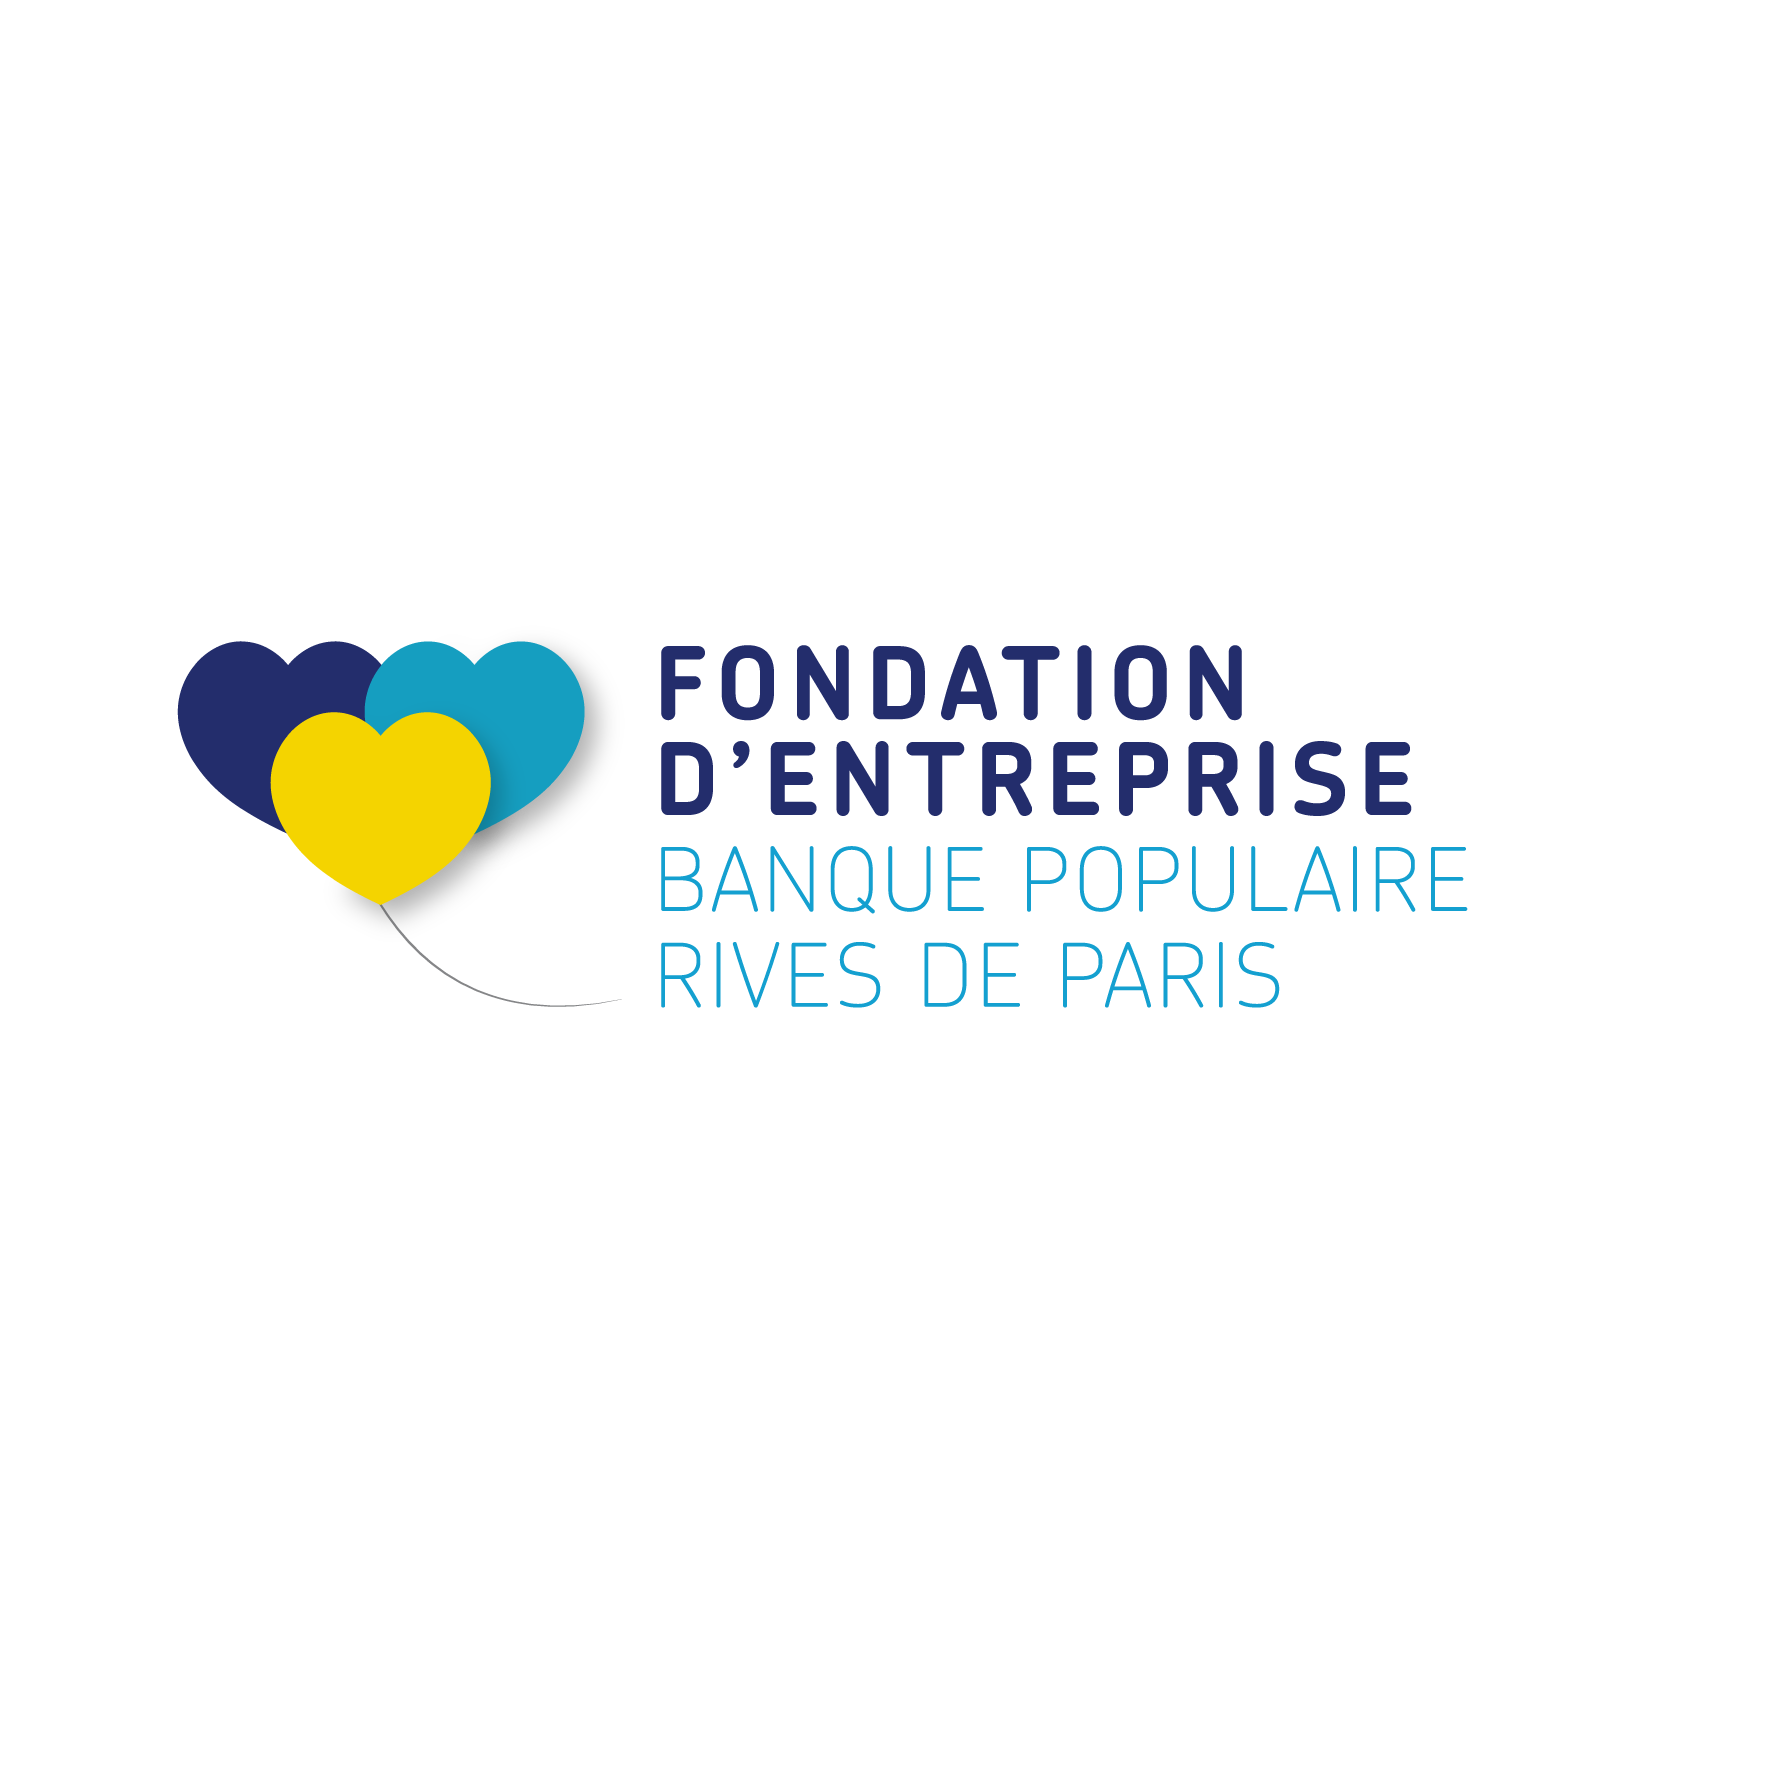 LOGO FONDATION ENTREPRISE BP RIVES PARIS